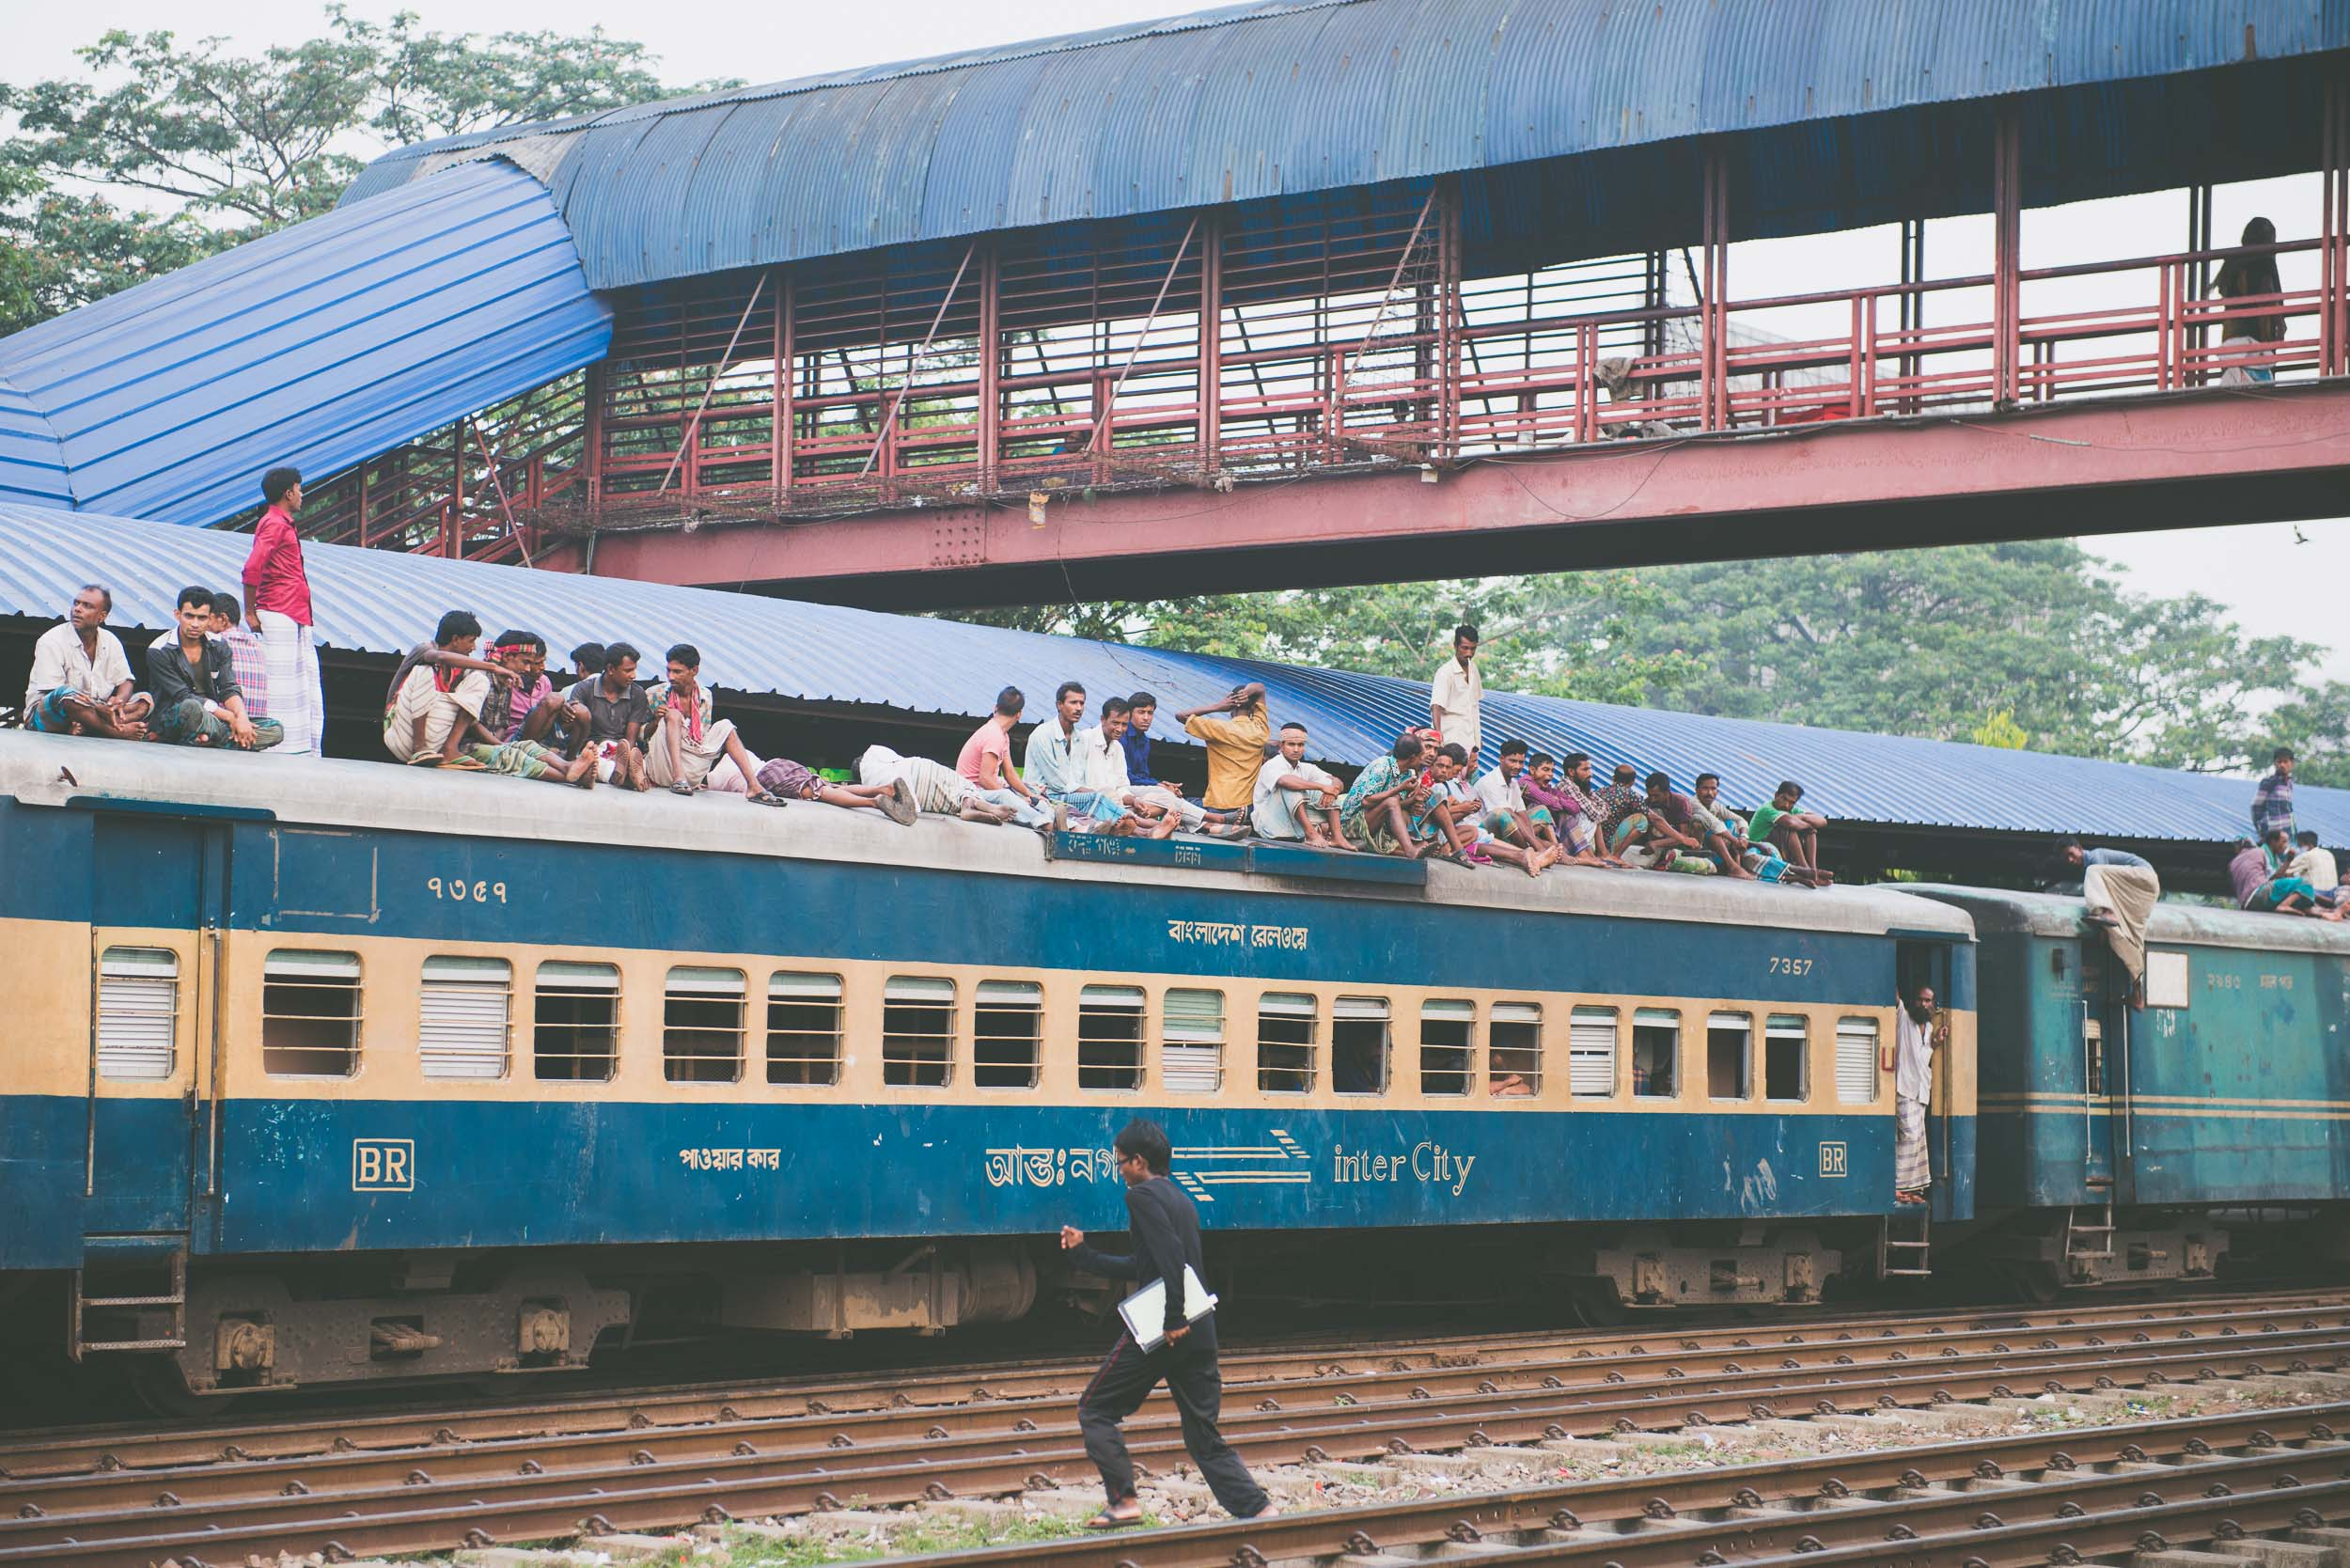 Bangladesh train - Travel - Photo credit Nicola Bailey.jpg